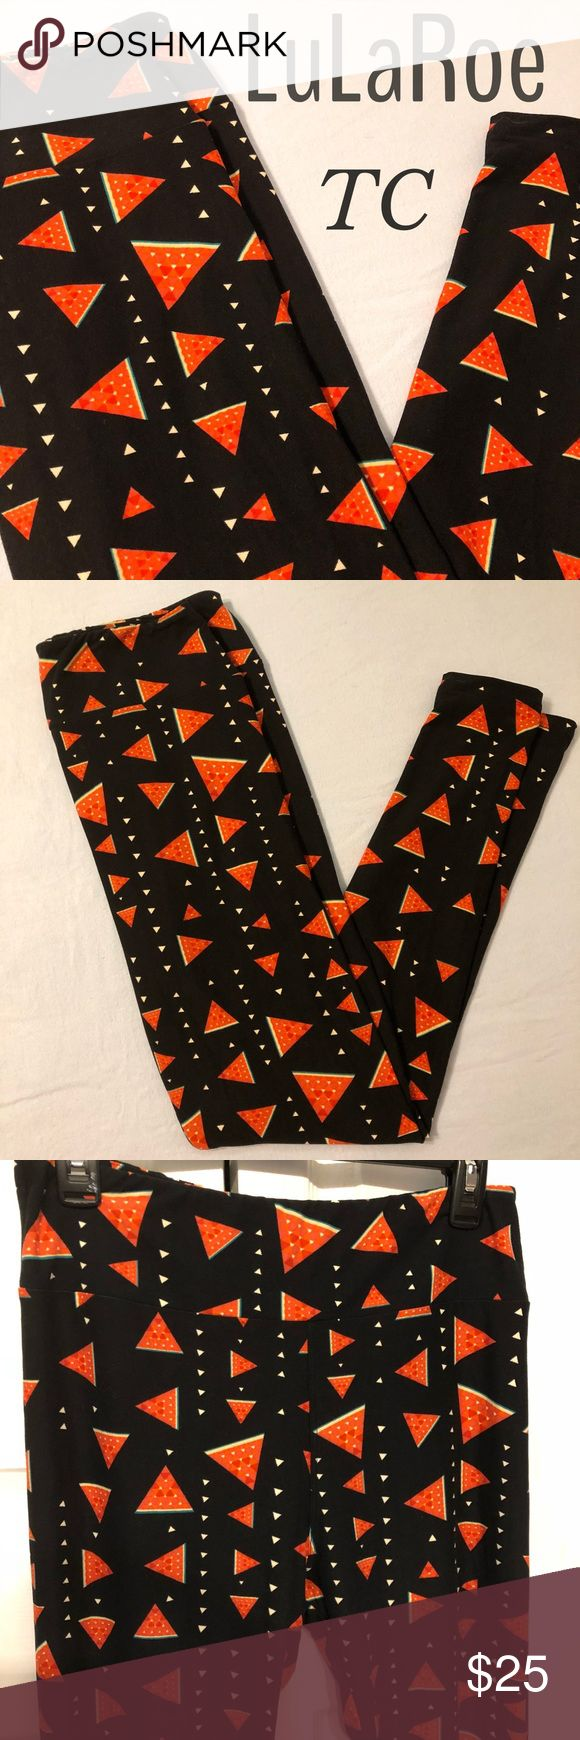 """NEW LuLaRoe TC Watermelon 🍉 Leggings New without tag (did not come with tag from consultant), but does have original plastic bag  LuLaRoe leggings size TC (tall/curvy)  """"Vintage"""" for LLR from early 2016   Made in China  Would match great with any of the Noir pieces with this black background!  Print of either watermelon or maybe pizza?  I am guessing watermelon 🍉   Super duper soft Wide yoga waistband  Stretchy material   Check out all pics for greater detail!  Would also look great for…"""